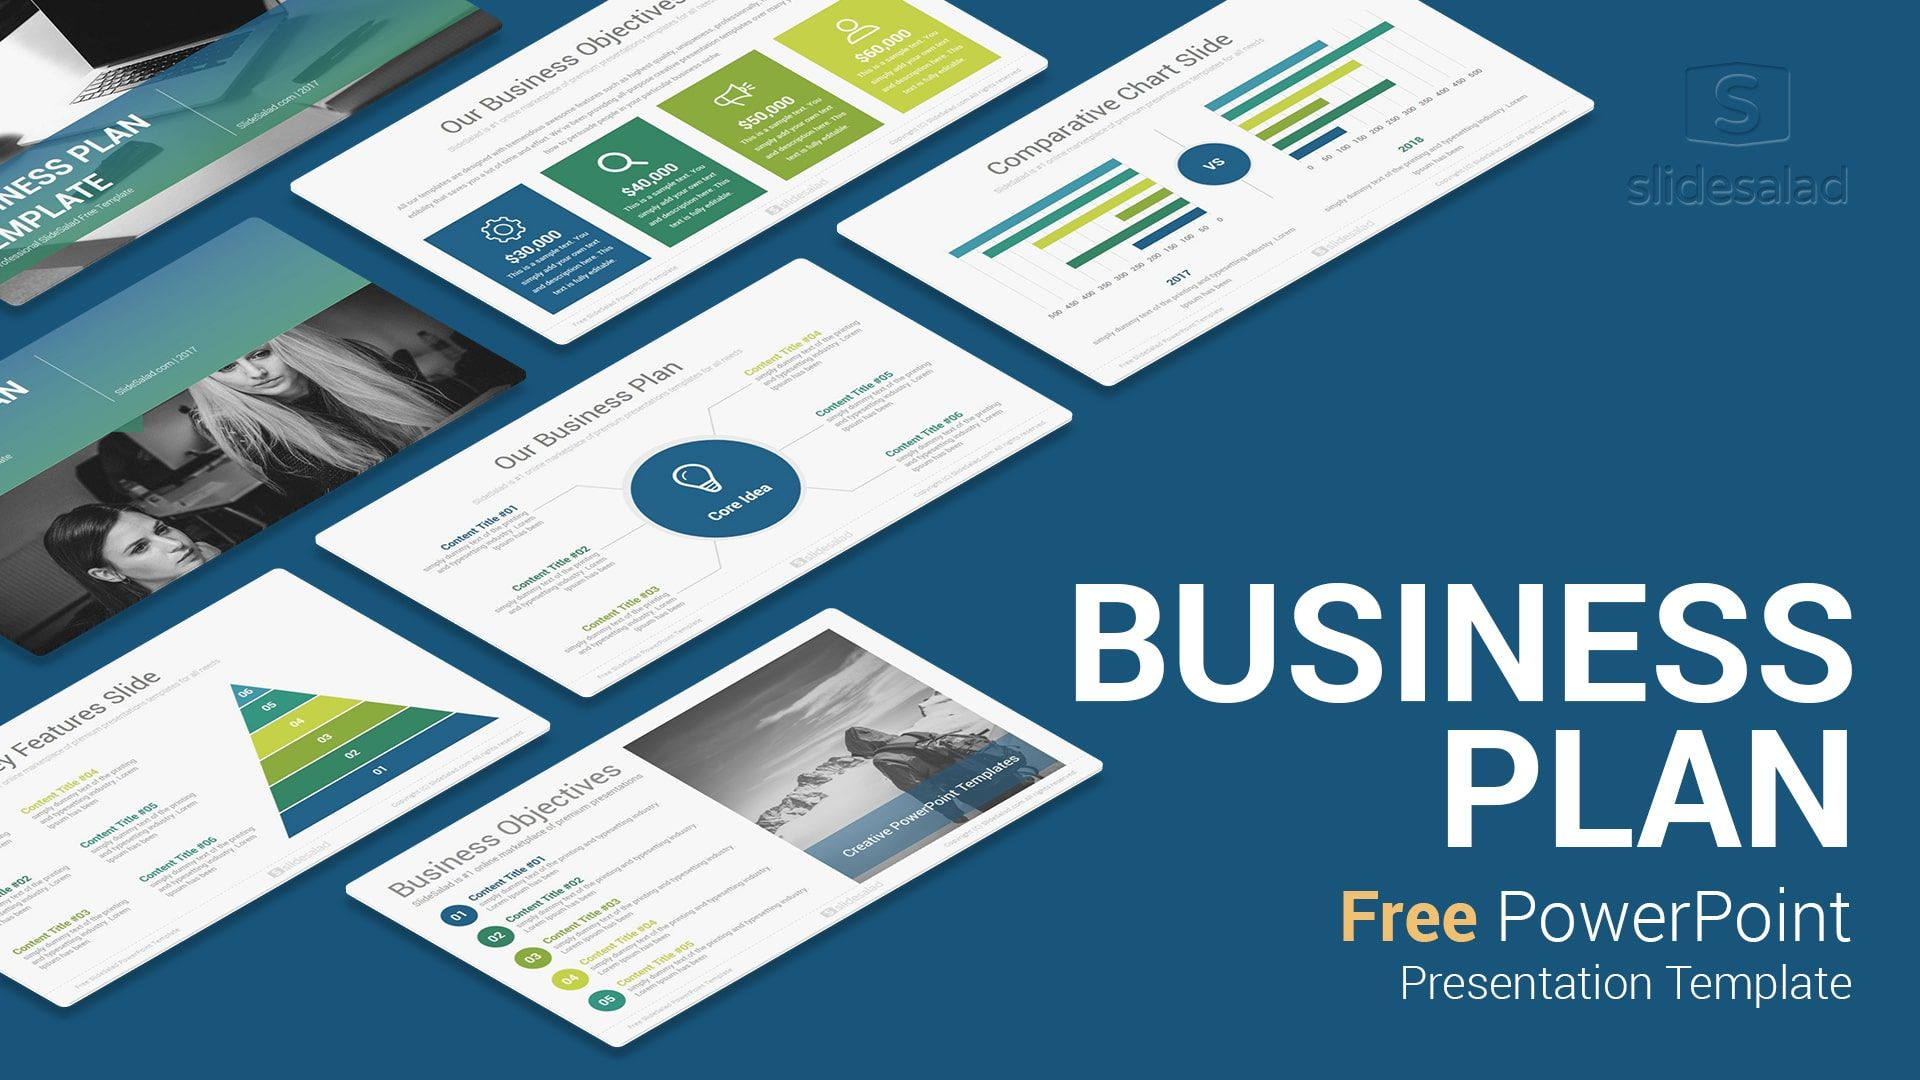 Download Wallpaper Download Template Ppt Business Plan Free